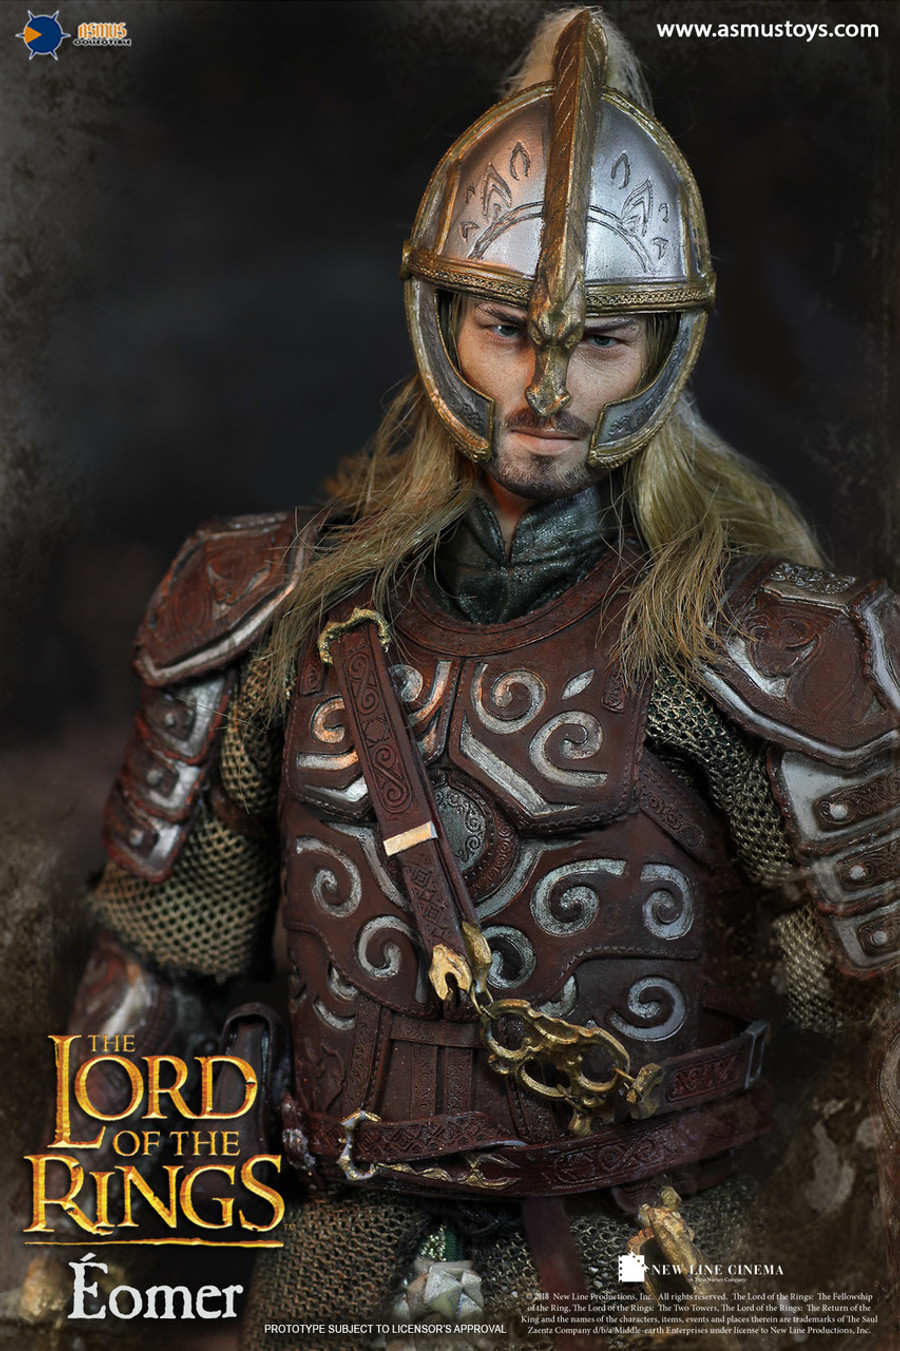 Asmus Toys - The Lord of The Ring Series: Éomer